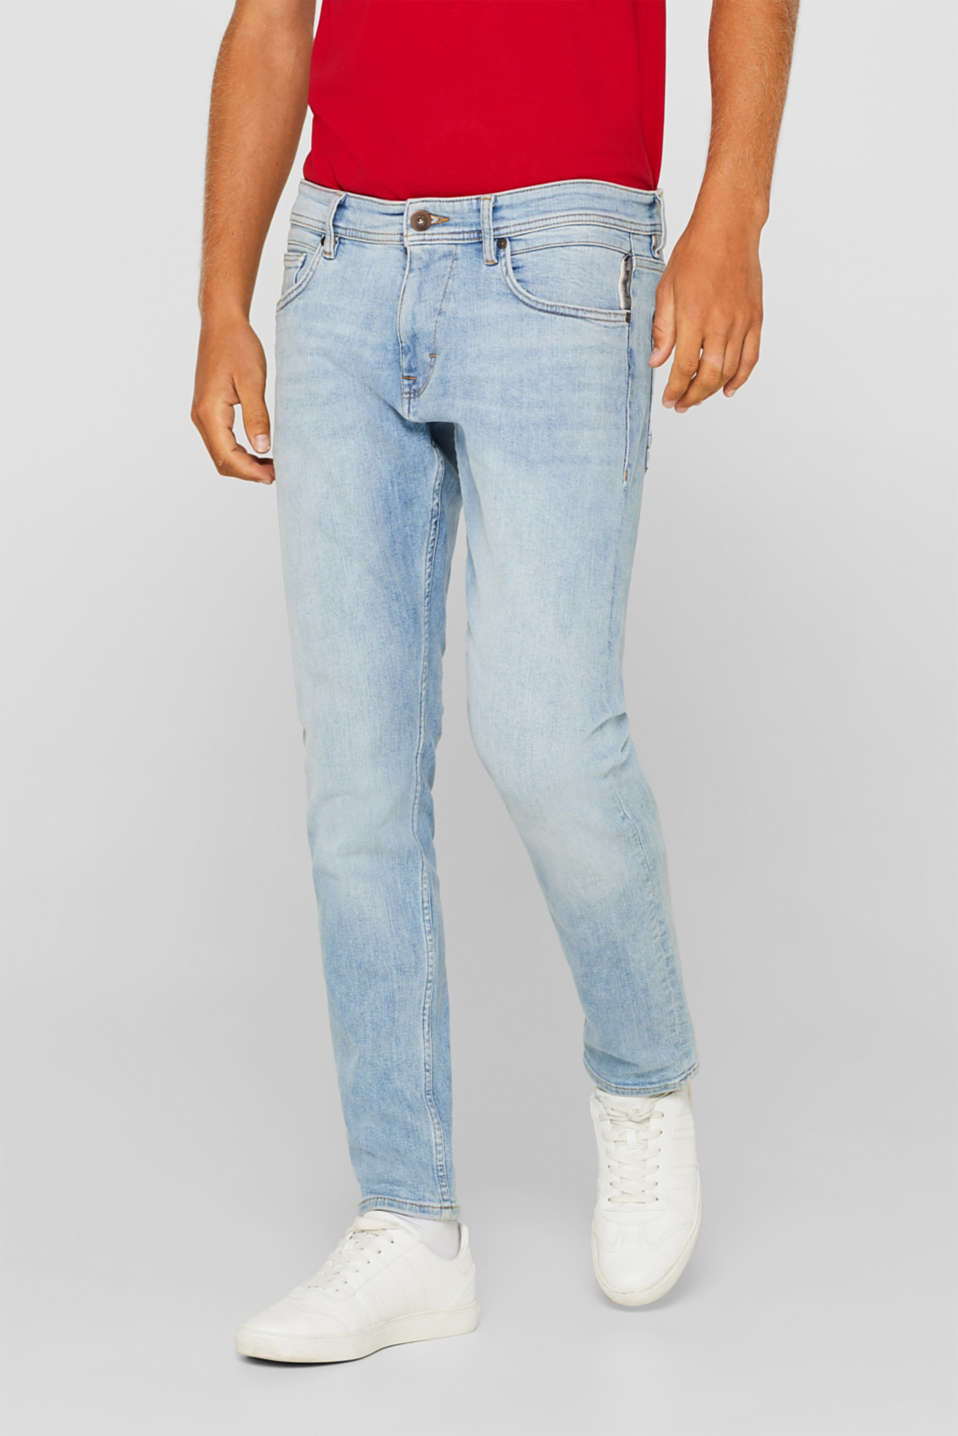 edc - Stretch jeans with a pale garment wash